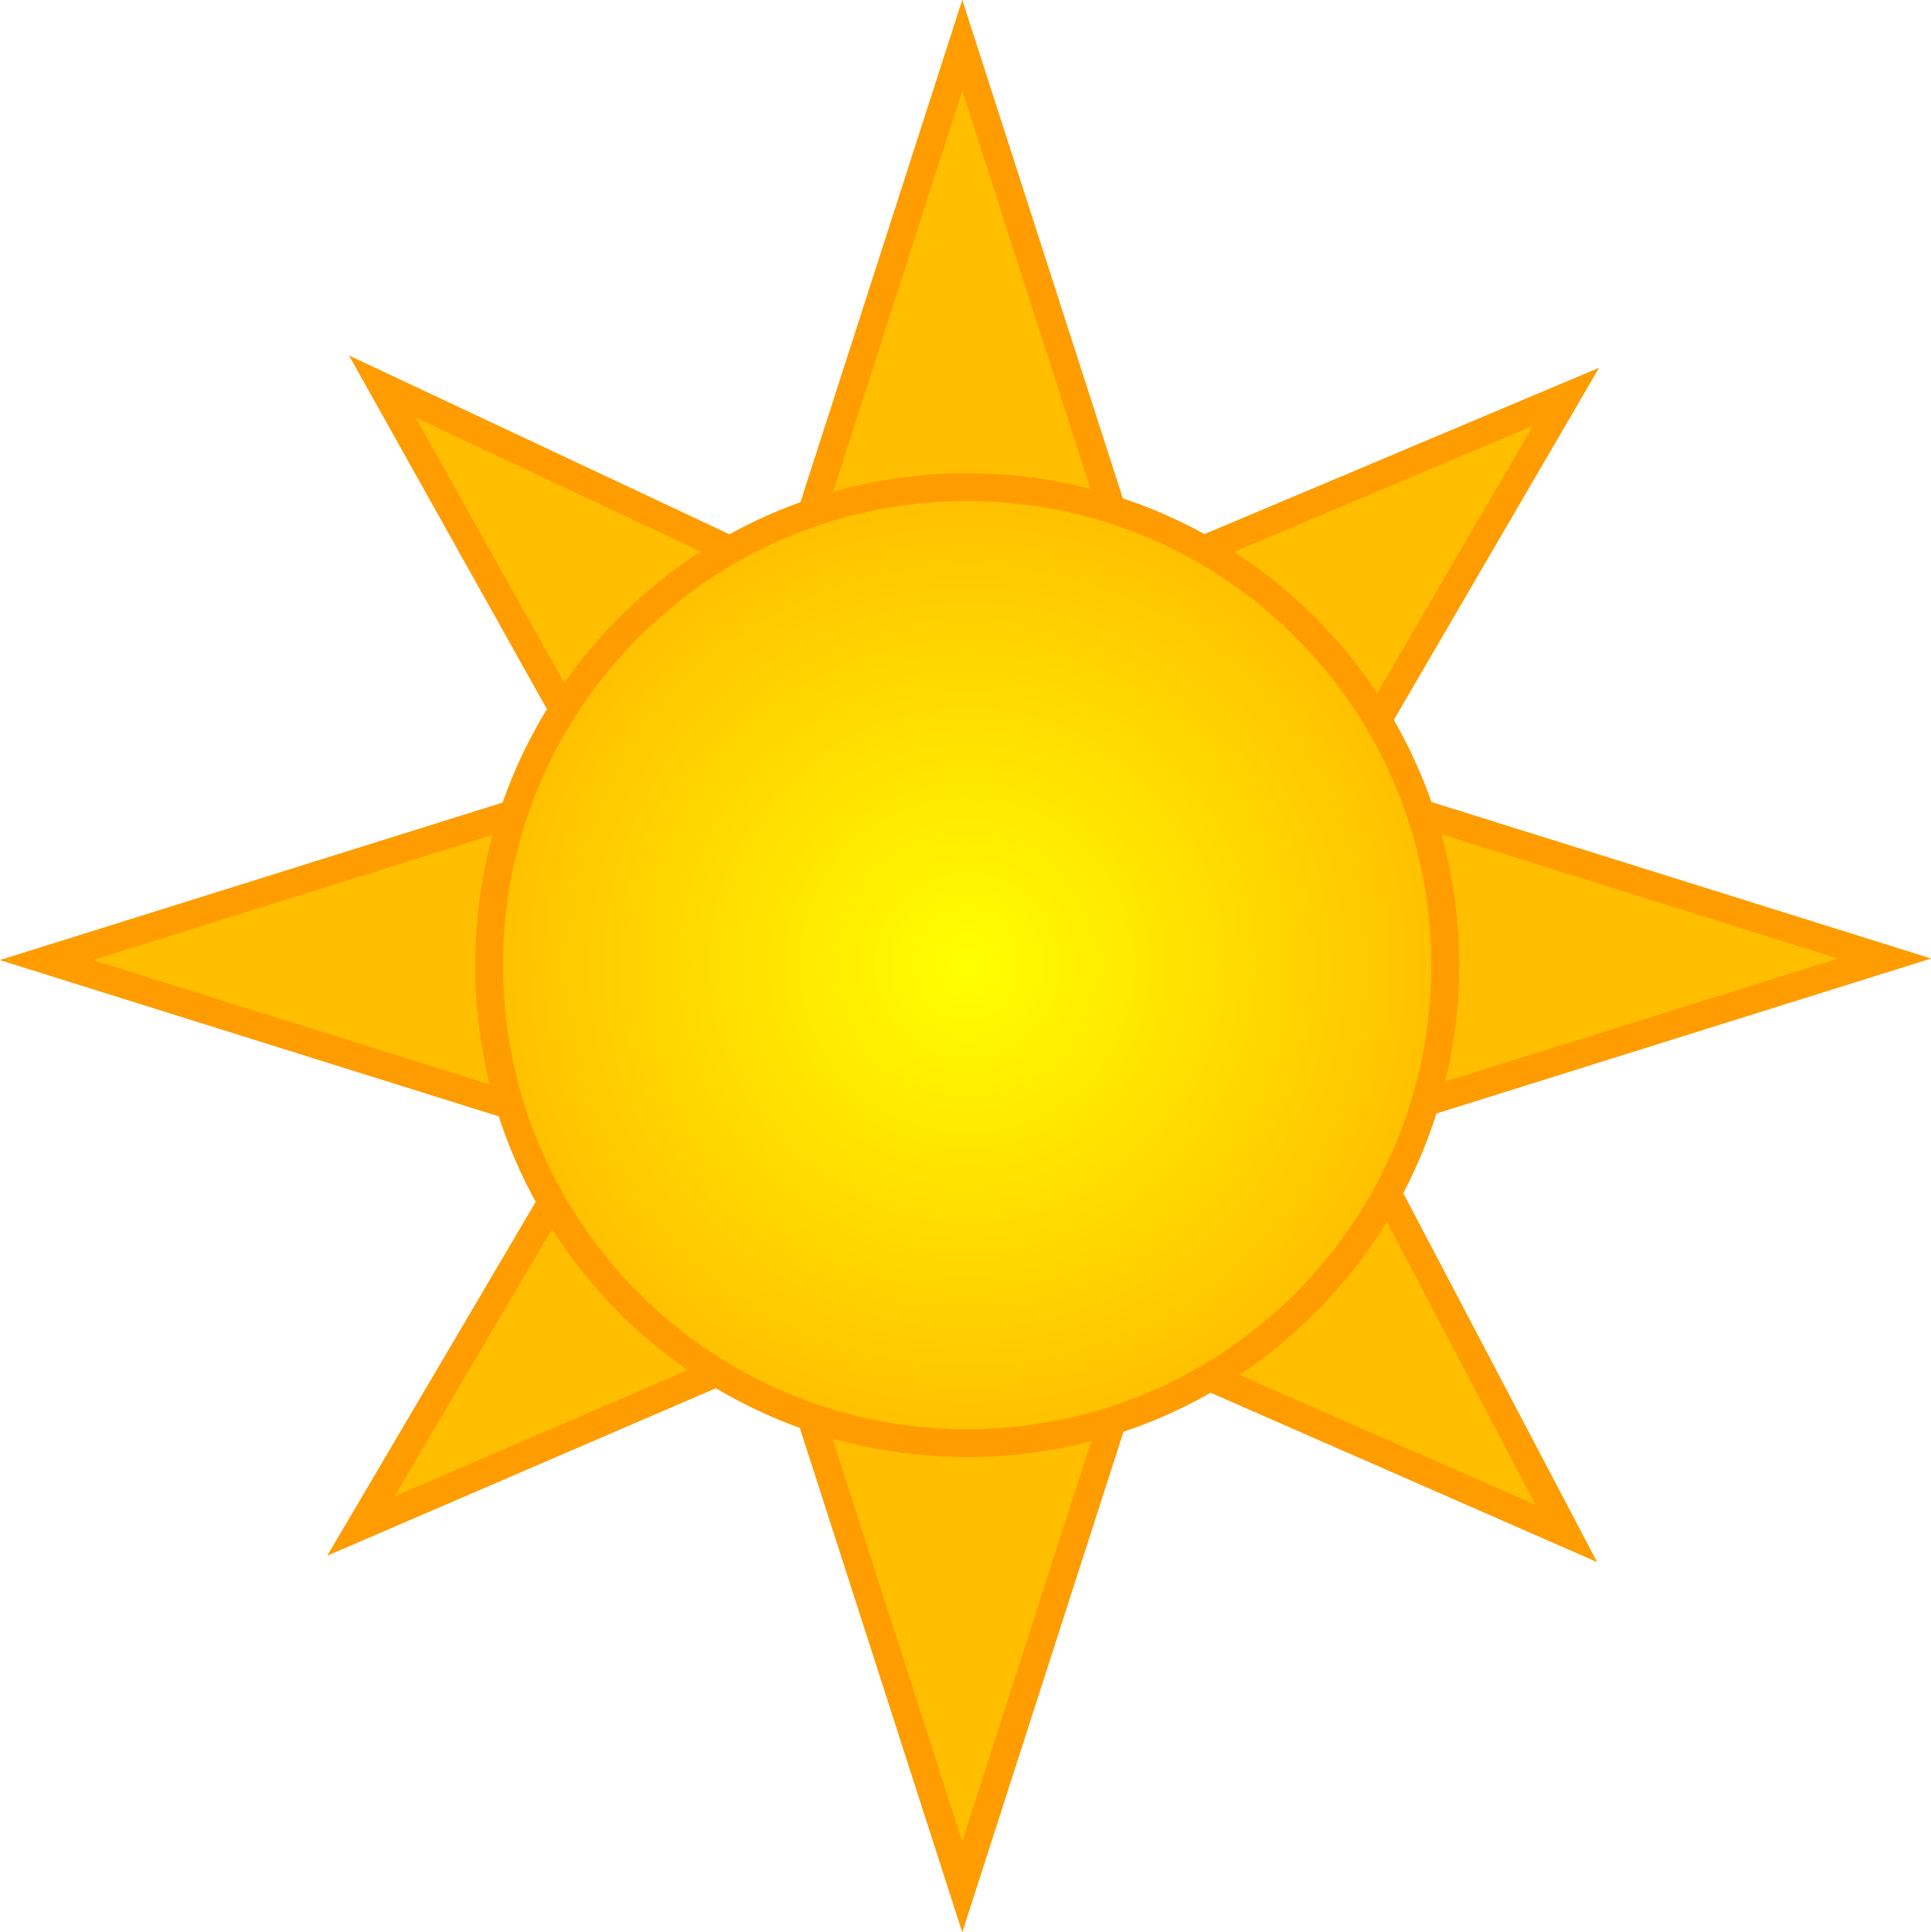 Sunny clipart simple. Free sun images clip